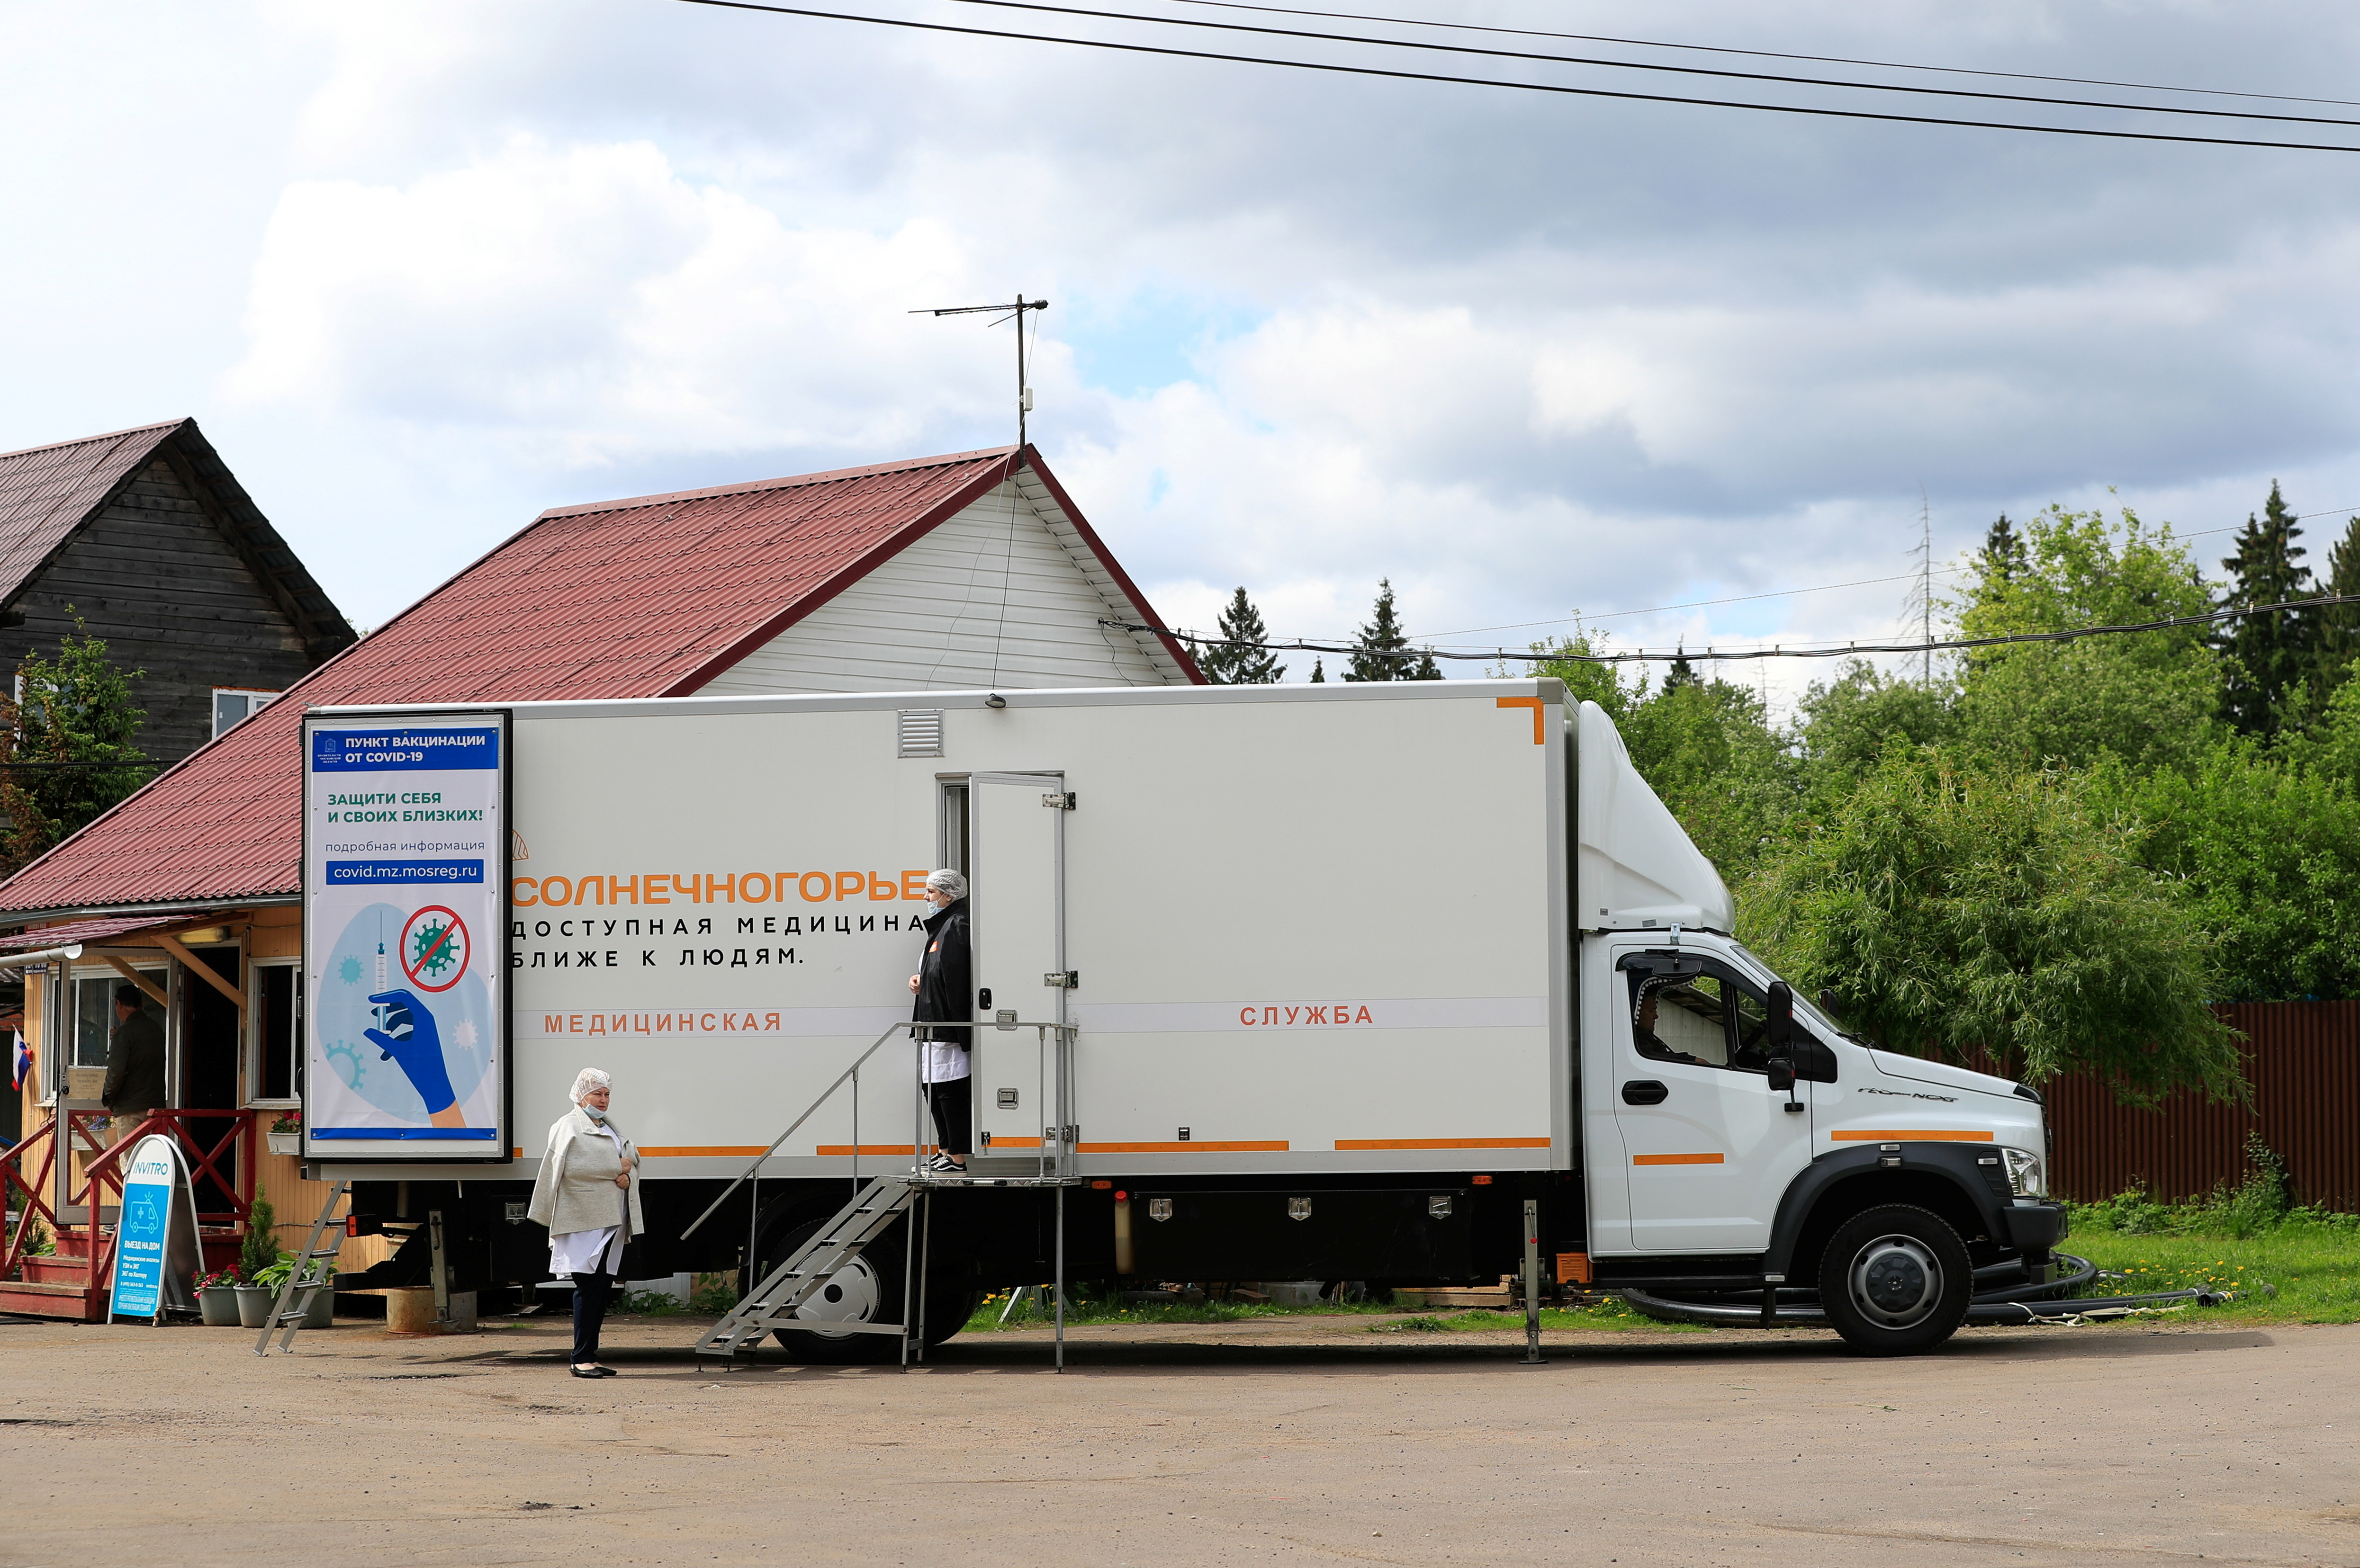 Medical workers are seen at a mobile coronavirus disease (COVID-19) vaccination centre in a dacha community near the village of Poyarkovo in Moscow Region, Russia May 31, 2021.  REUTERS/Evgenia Novozhenina/File Photo